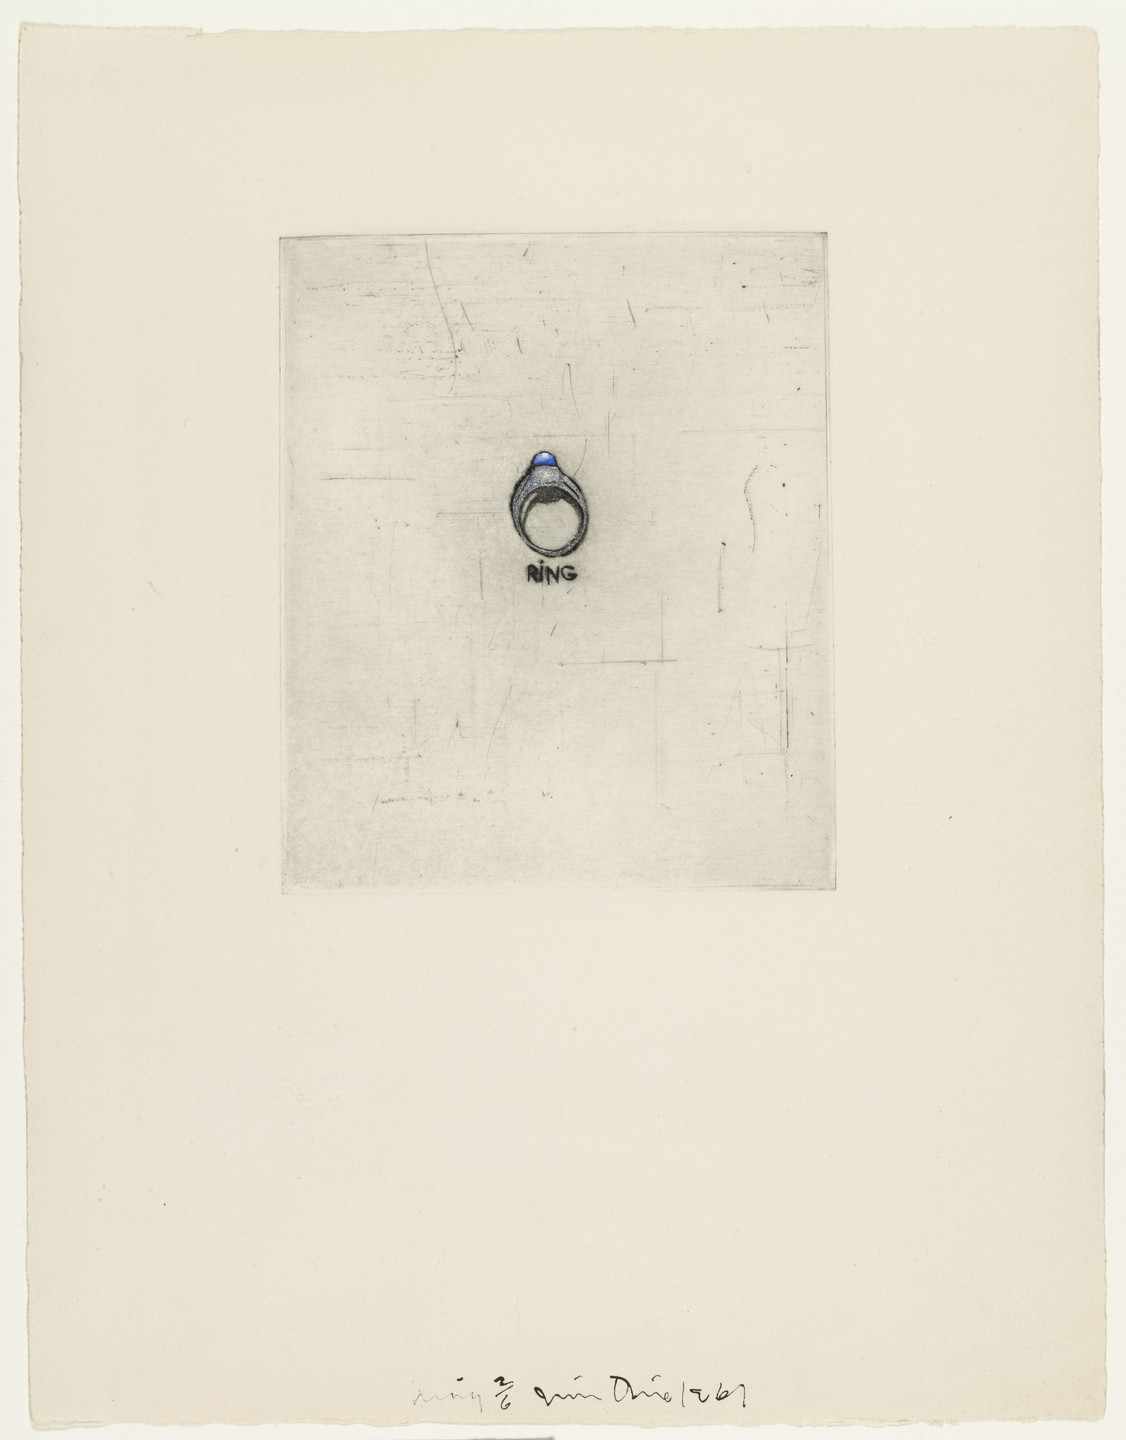 Jim Dine. Ring fromThese Are Ten Useful Objects Which No One Should Be Without When Traveling. 1961